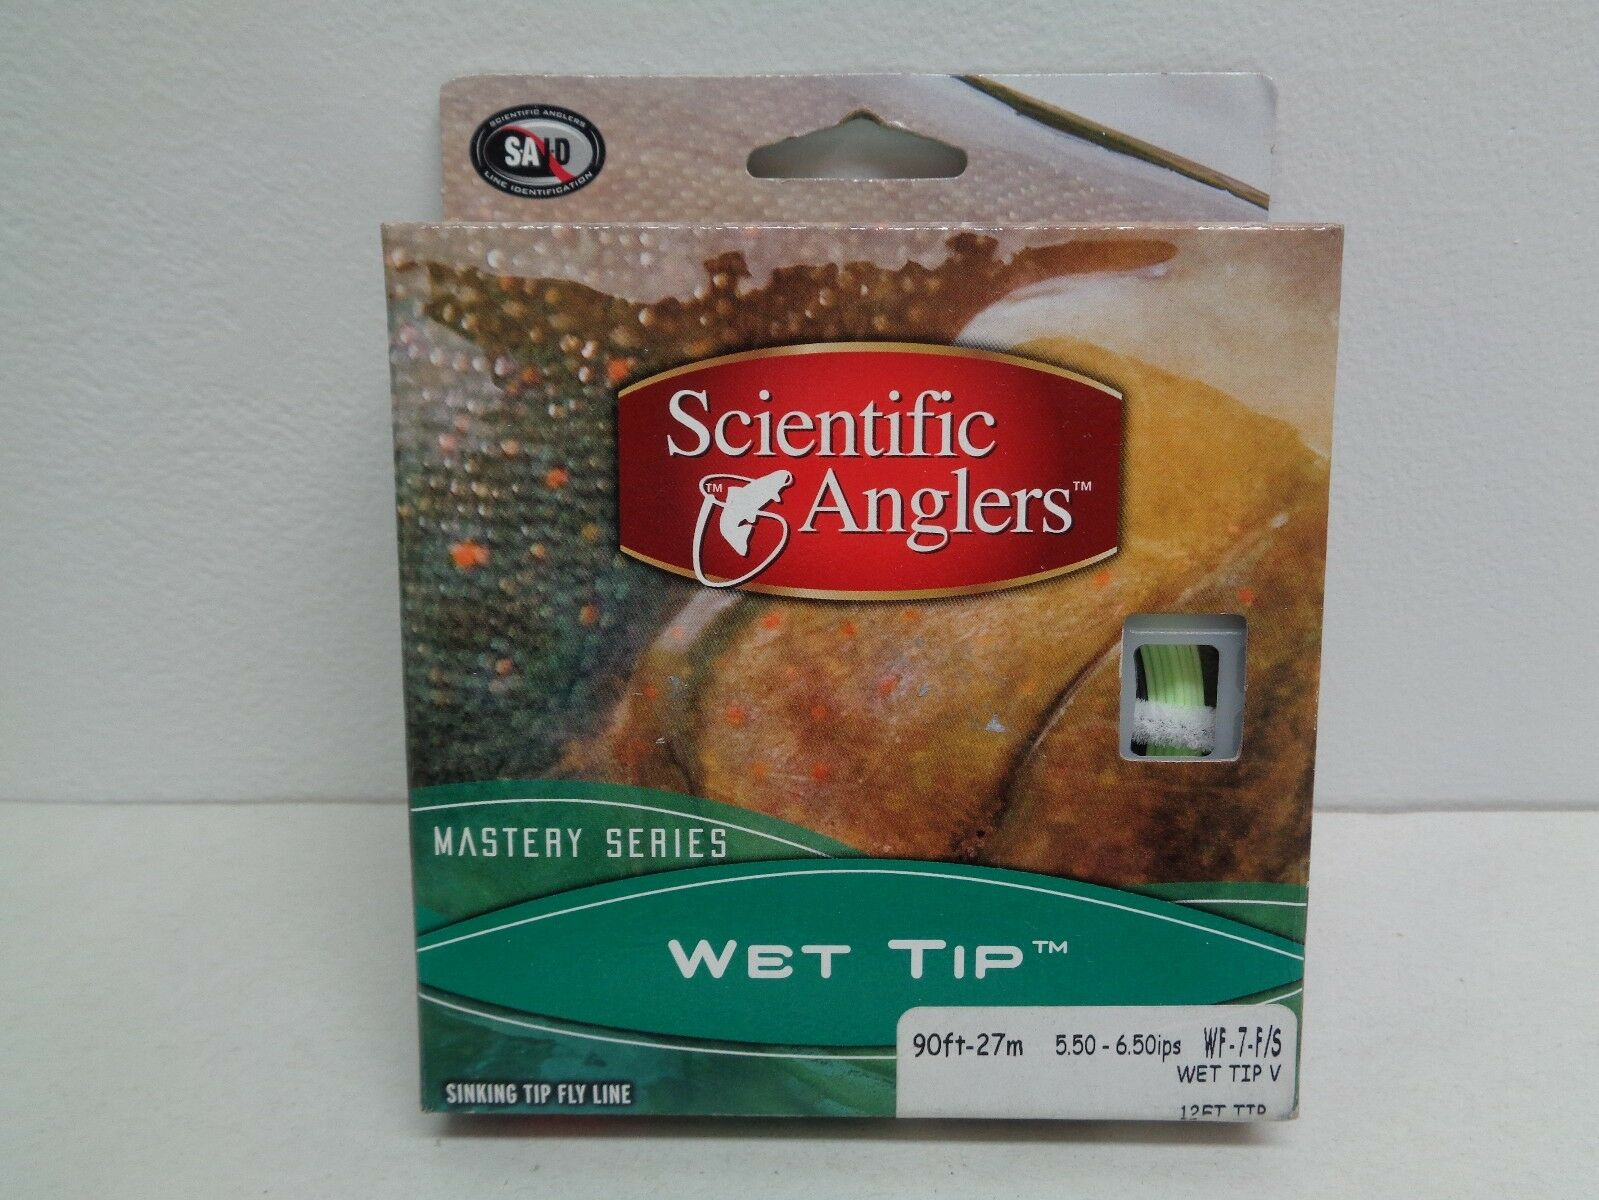 Scientific Anglers 90ft 27m WF-7-F S MASTERY SERIES WET TIP Green New Fly Line